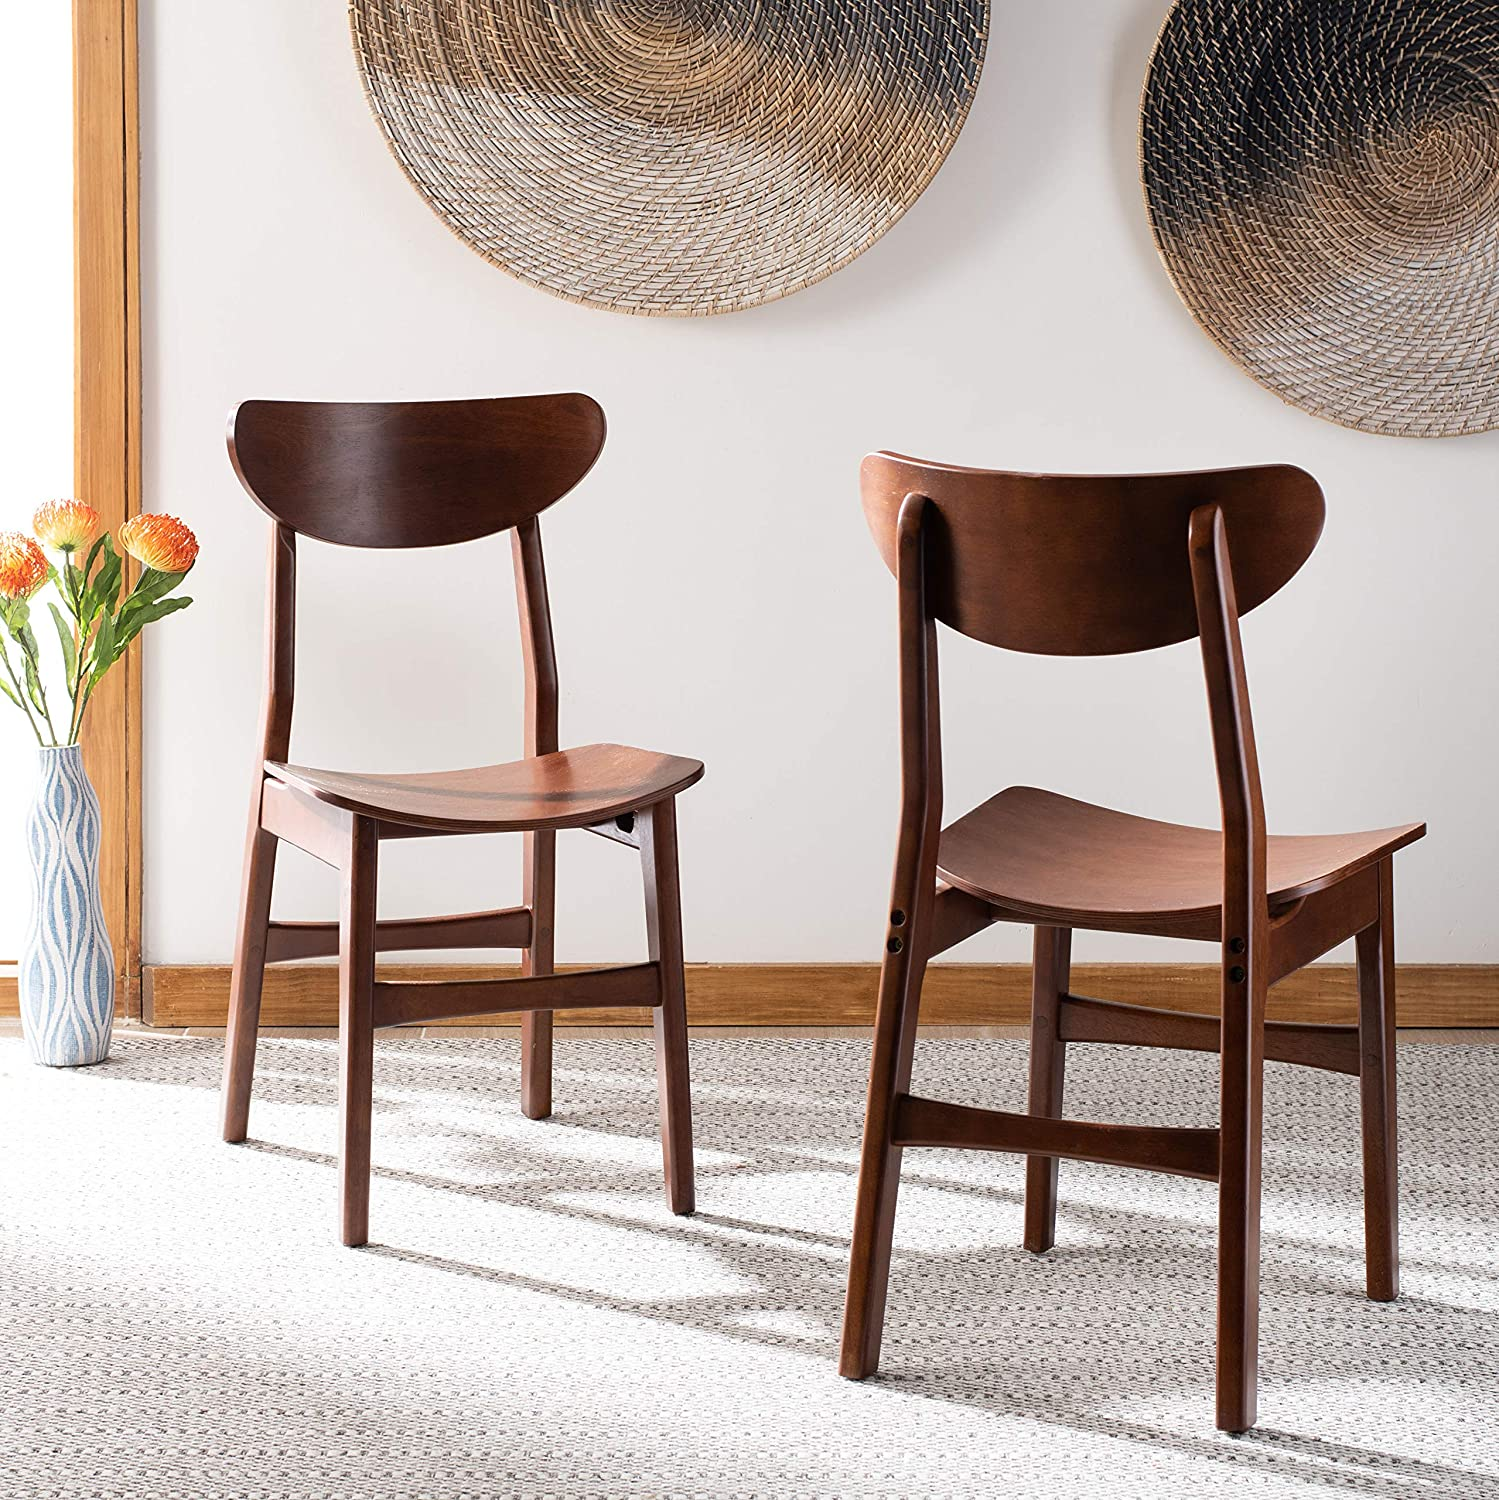 Safavieh Home Lucca Cherry Retro (Set of 2) Dining Chair,